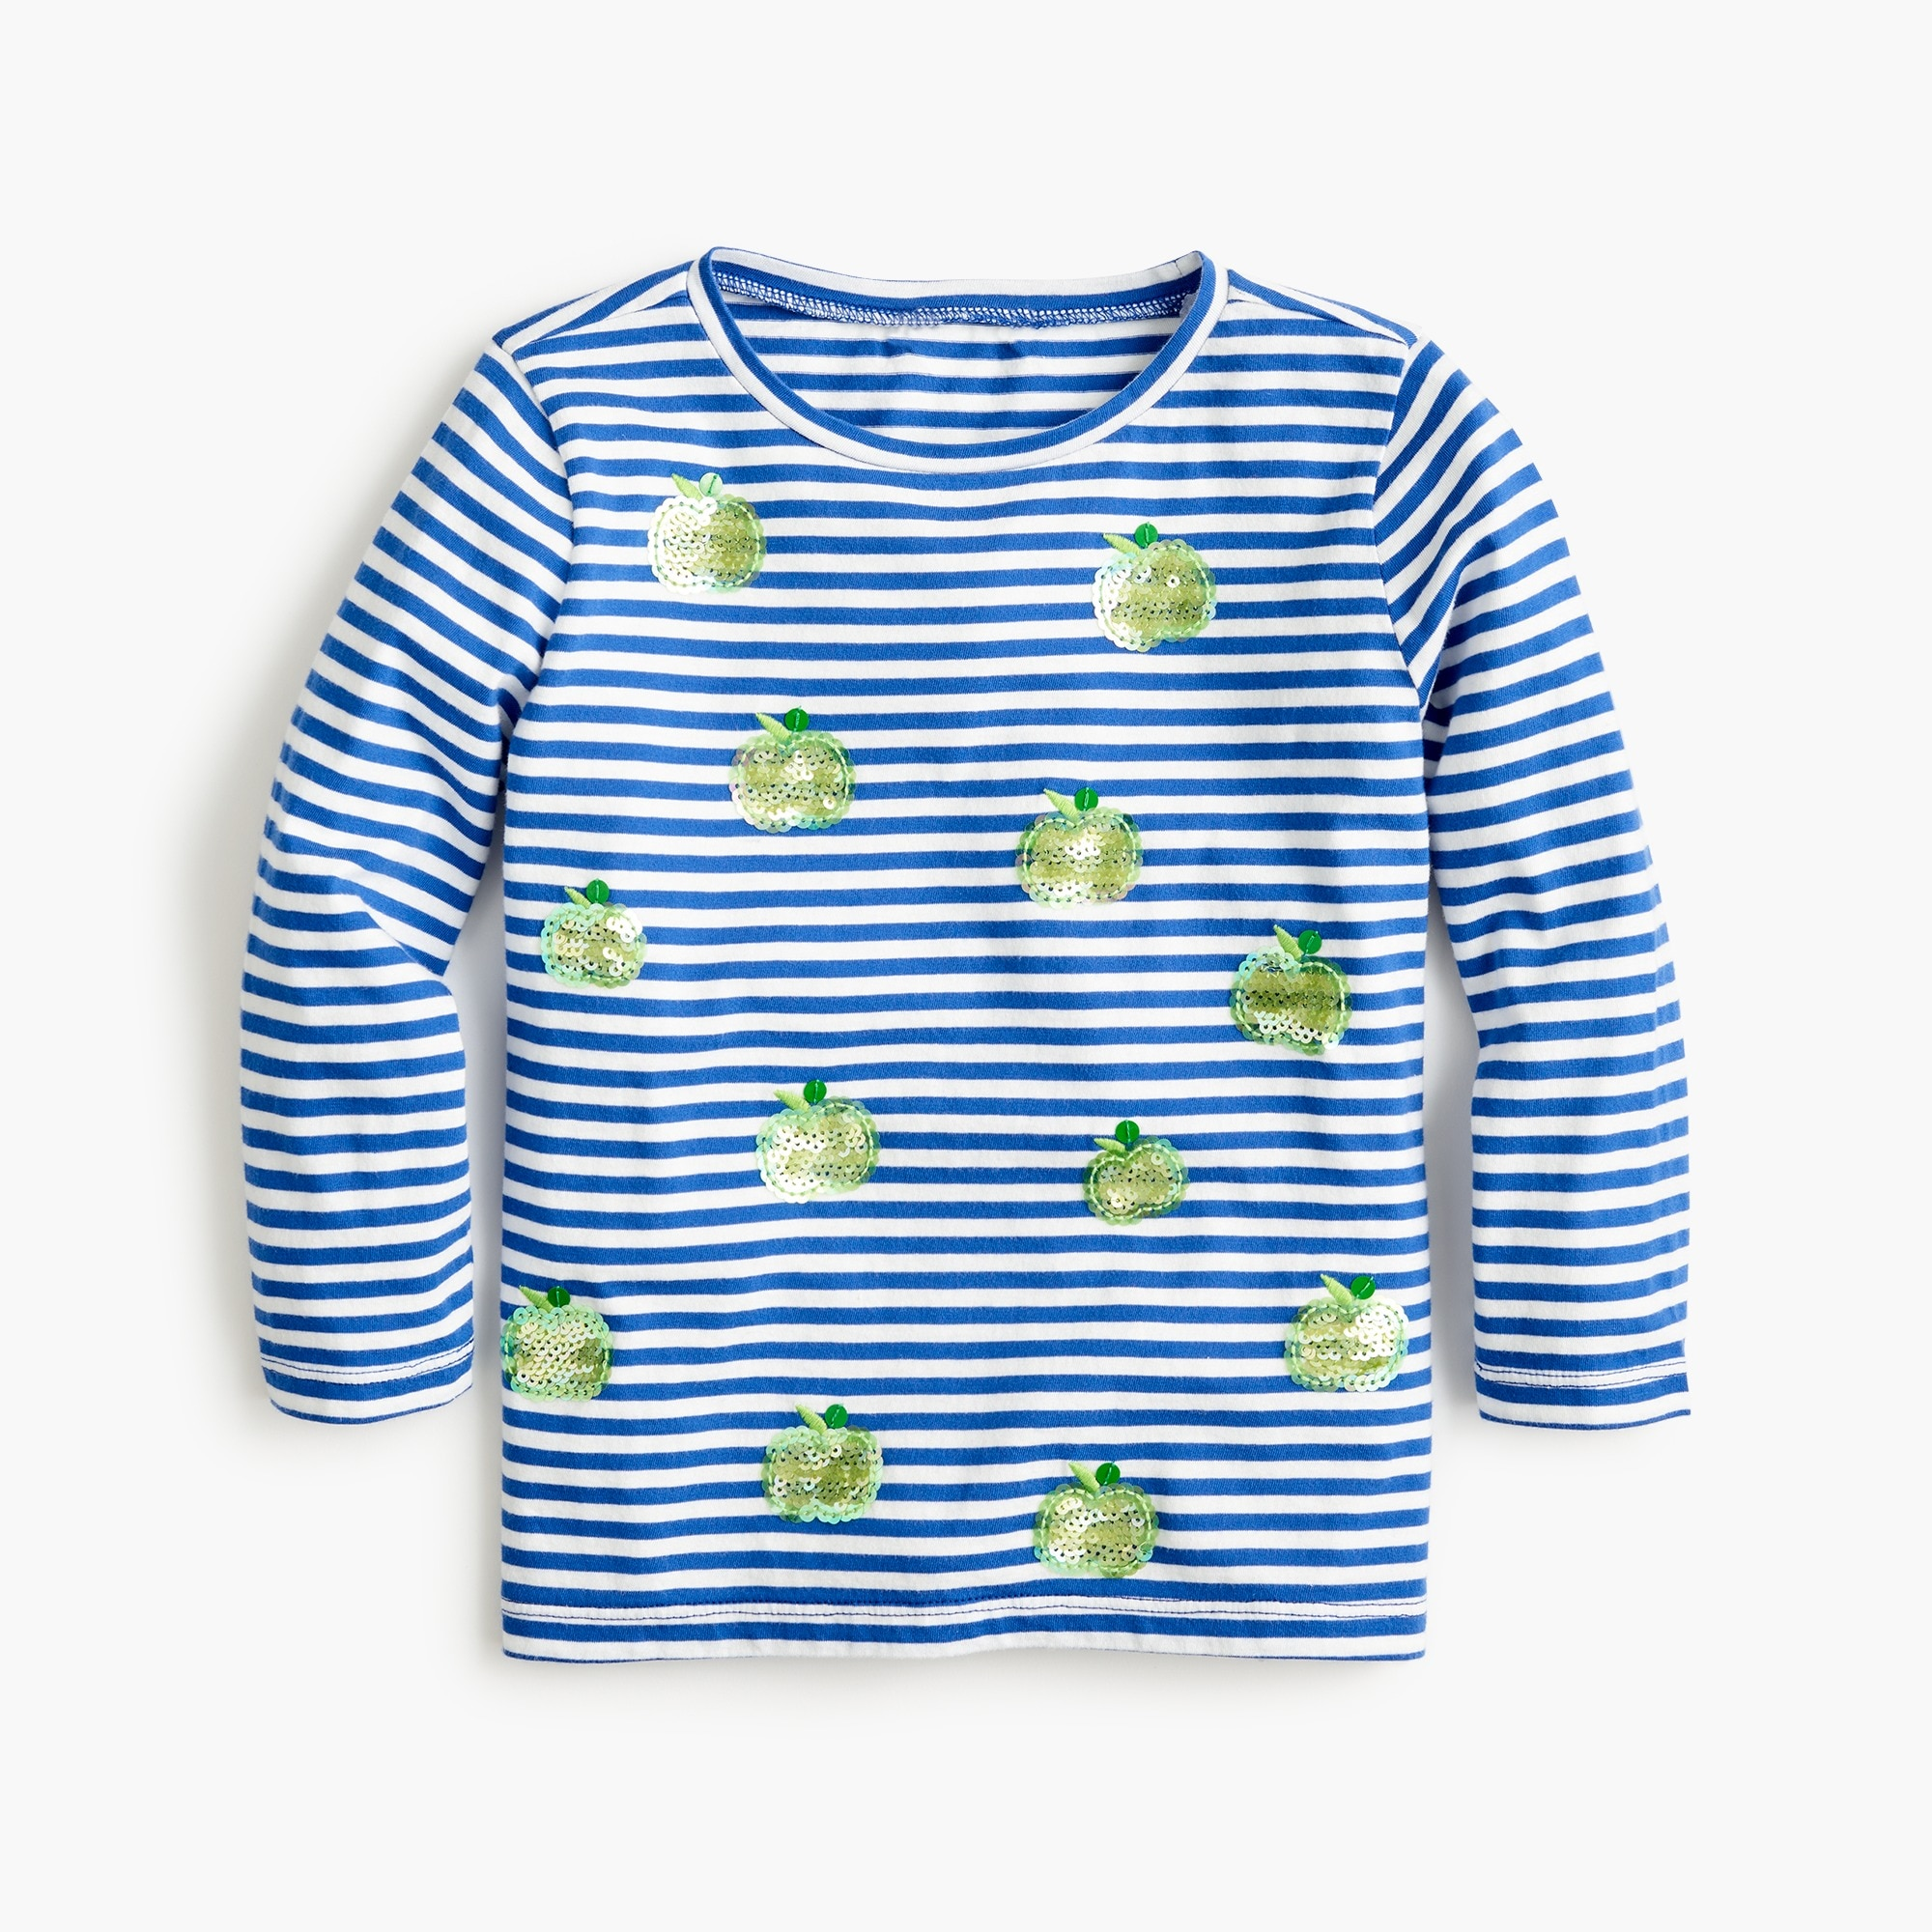 girls Girls' striped T-shirt with apples